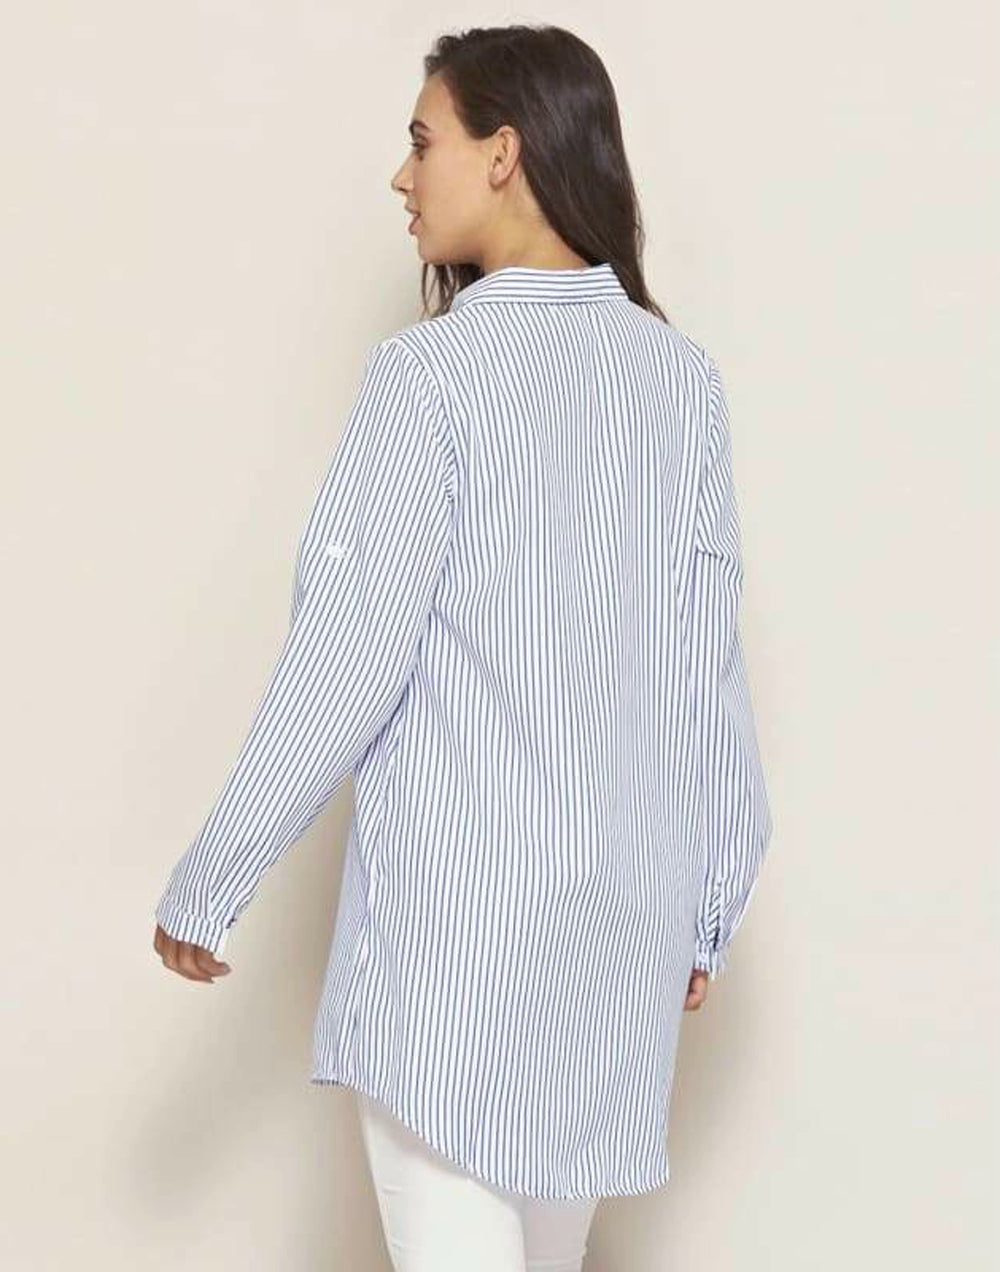 Stripe Embroidered Button Front Shirt - Plus Size Tops & Shirts blue blue stripe shirts pia stripe embroidered button front shirt plus size